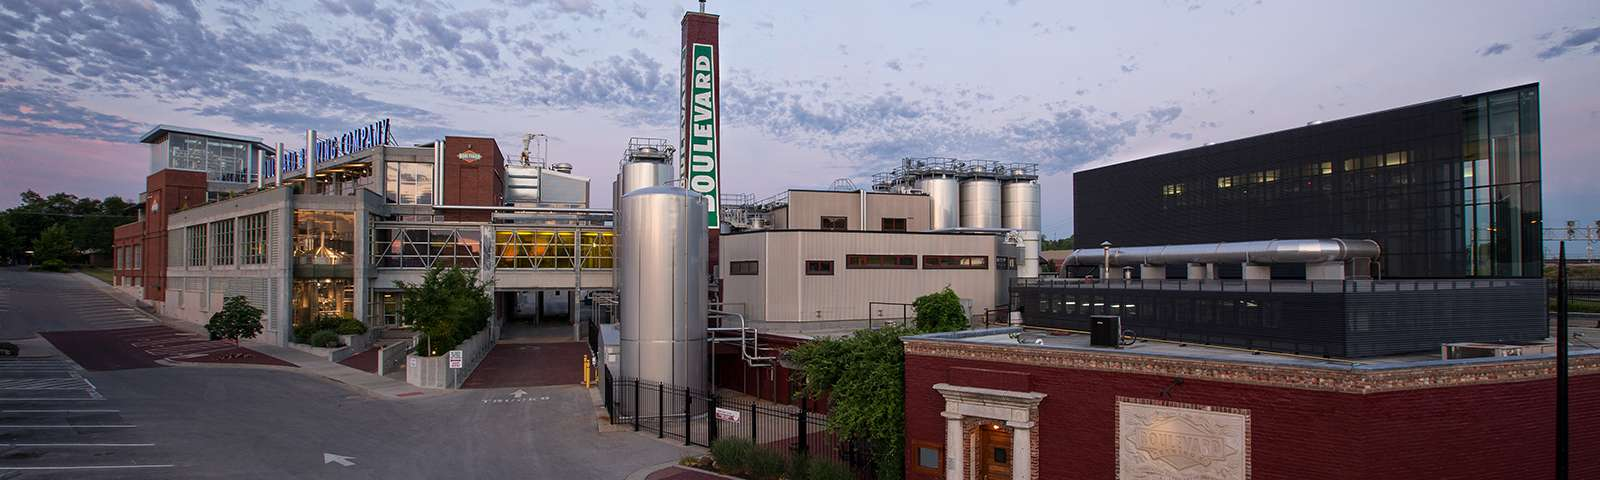 Boulevard Brewery Kansas City